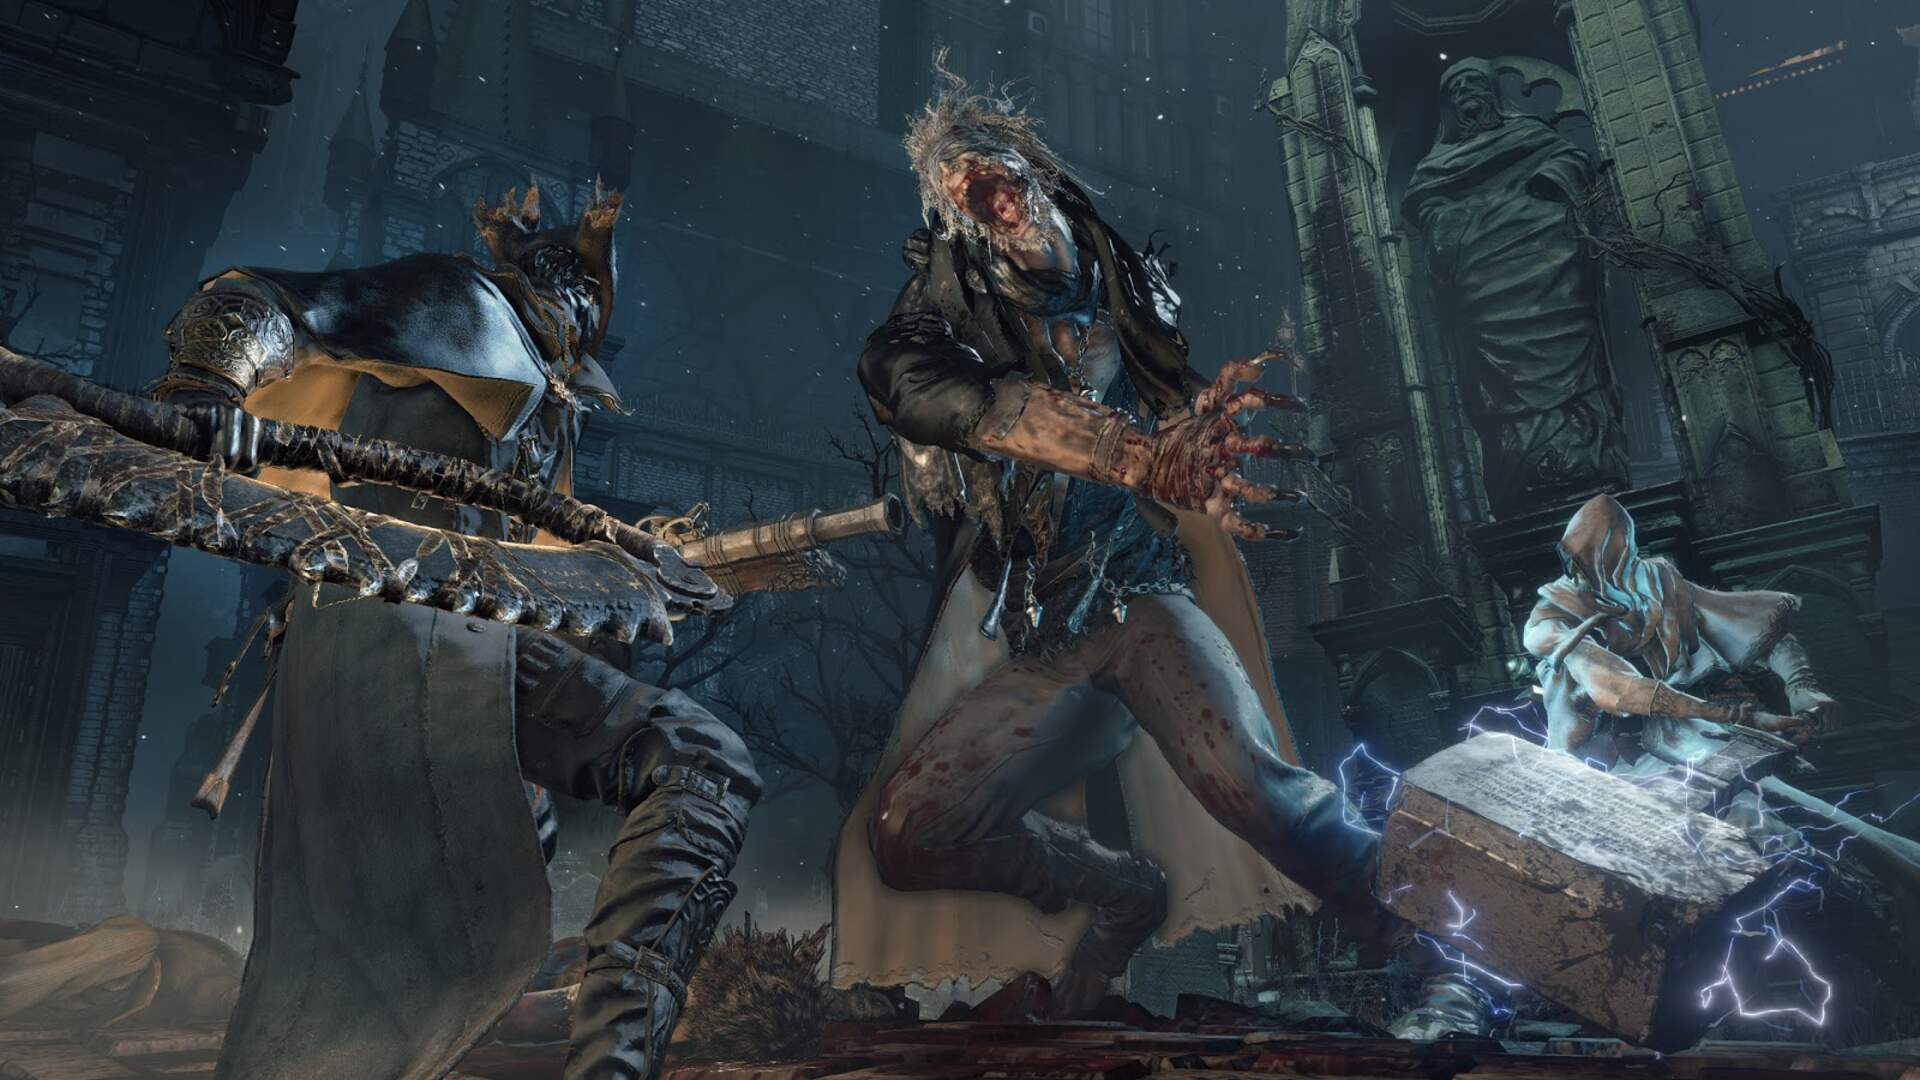 Fan Patches Bloodborne to Run at 60 FPS on Base PS4